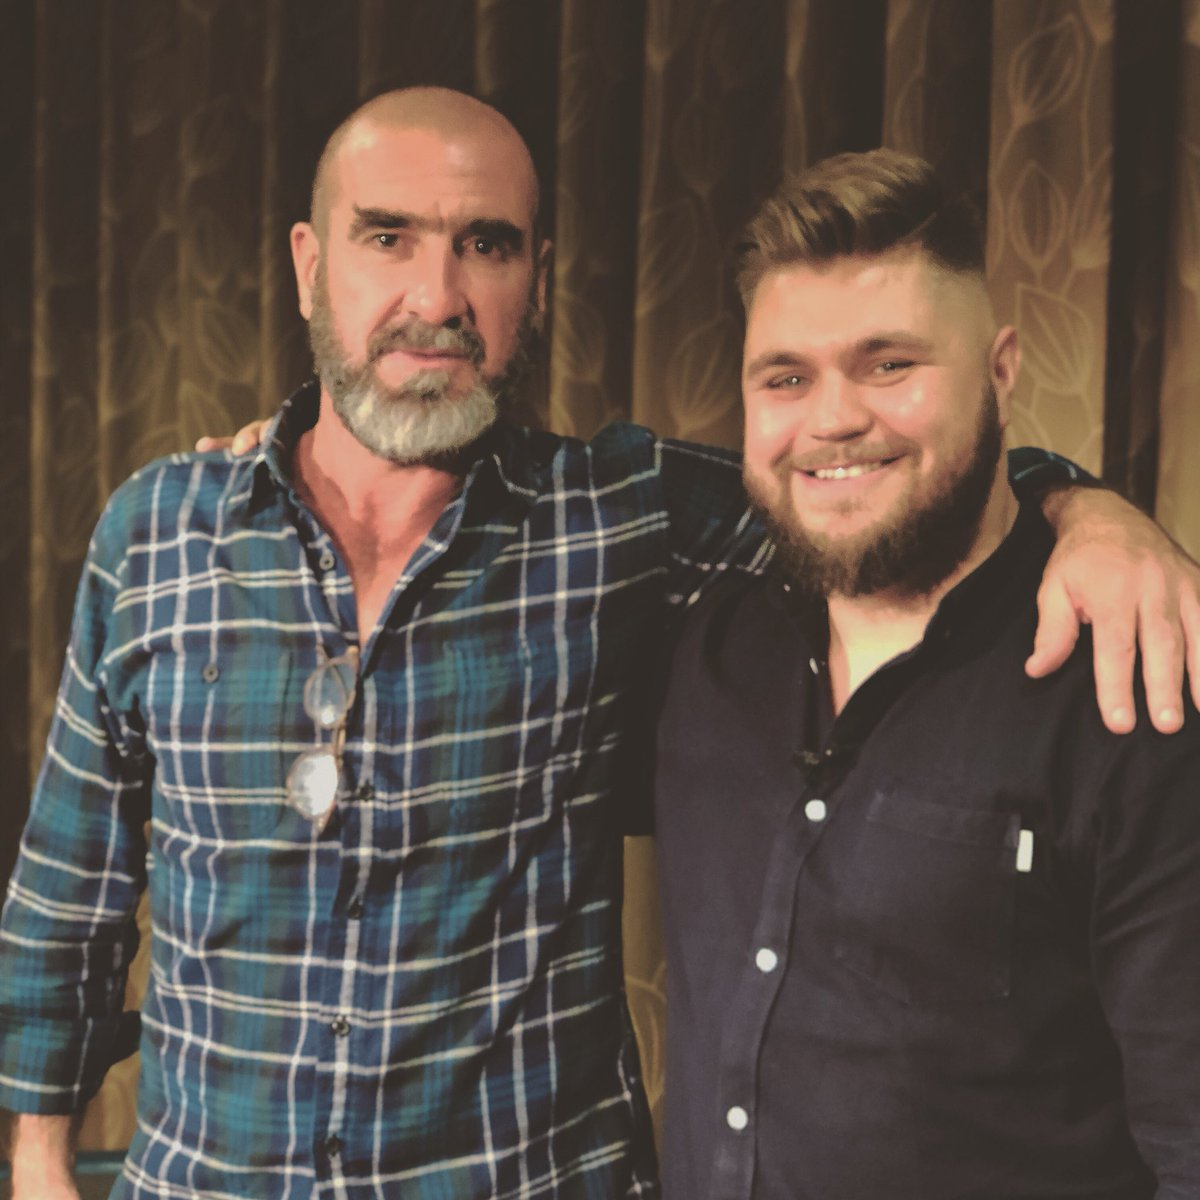 Interview with Cantona will be out at 10am on @fulltimedevils  #MUFC <br>http://pic.twitter.com/ZY5SpBBxCh